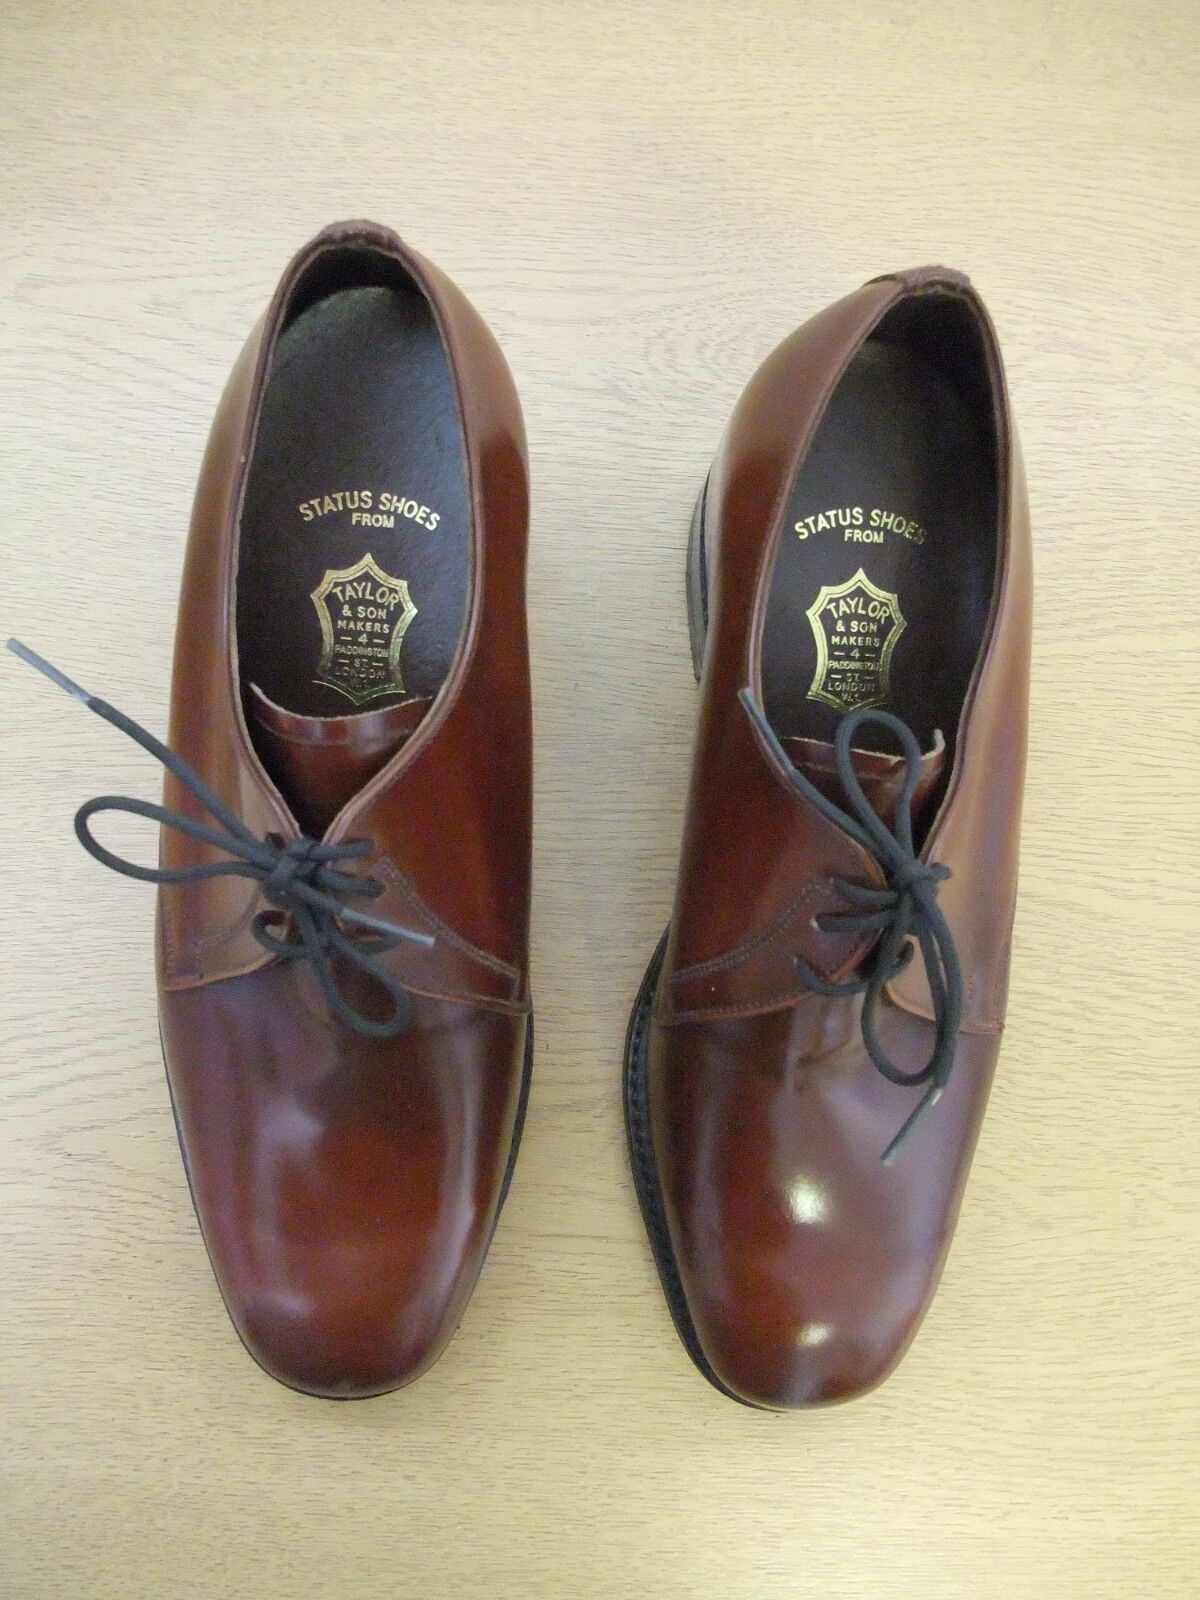 Mens shoes Taylor & Sons handmade brown lace-ups, size new 3320